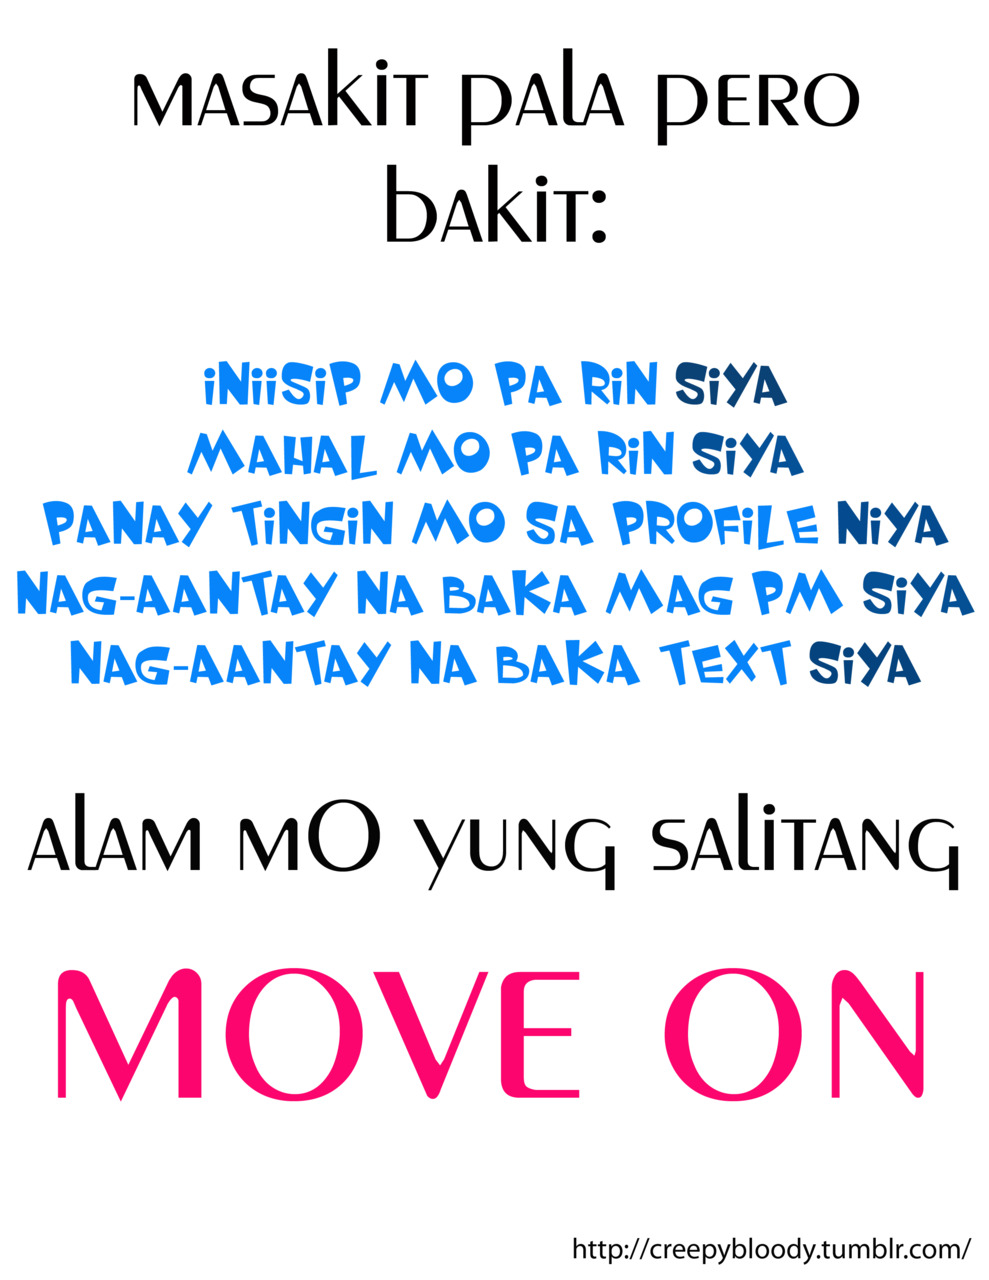 Secret relationship quotes tagalog